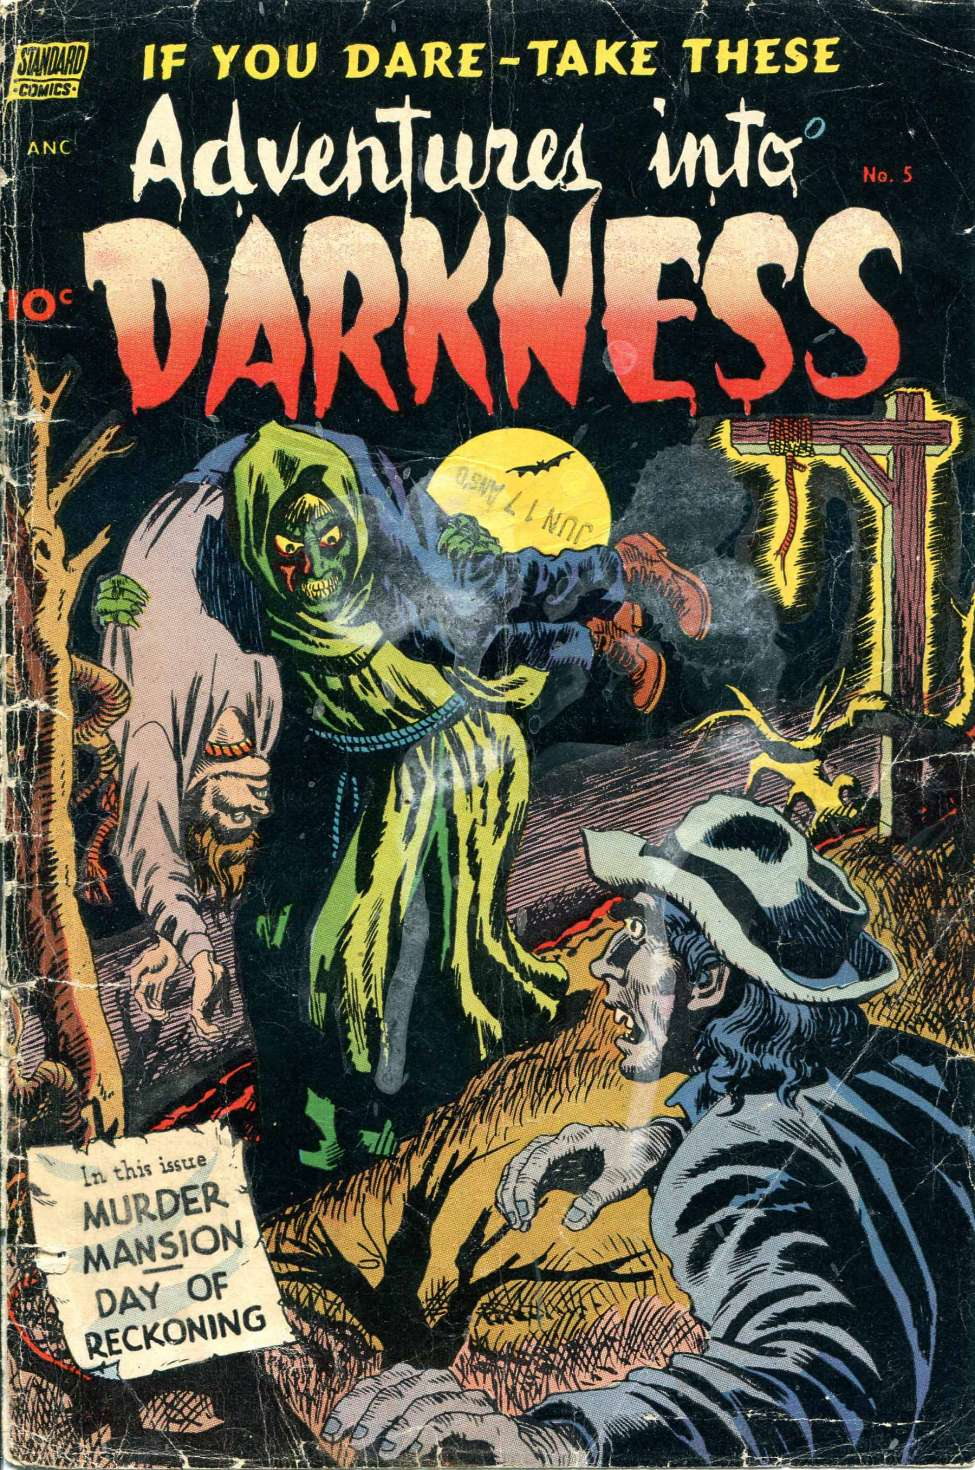 Comic Book Cover For Adventures into Darkness #5